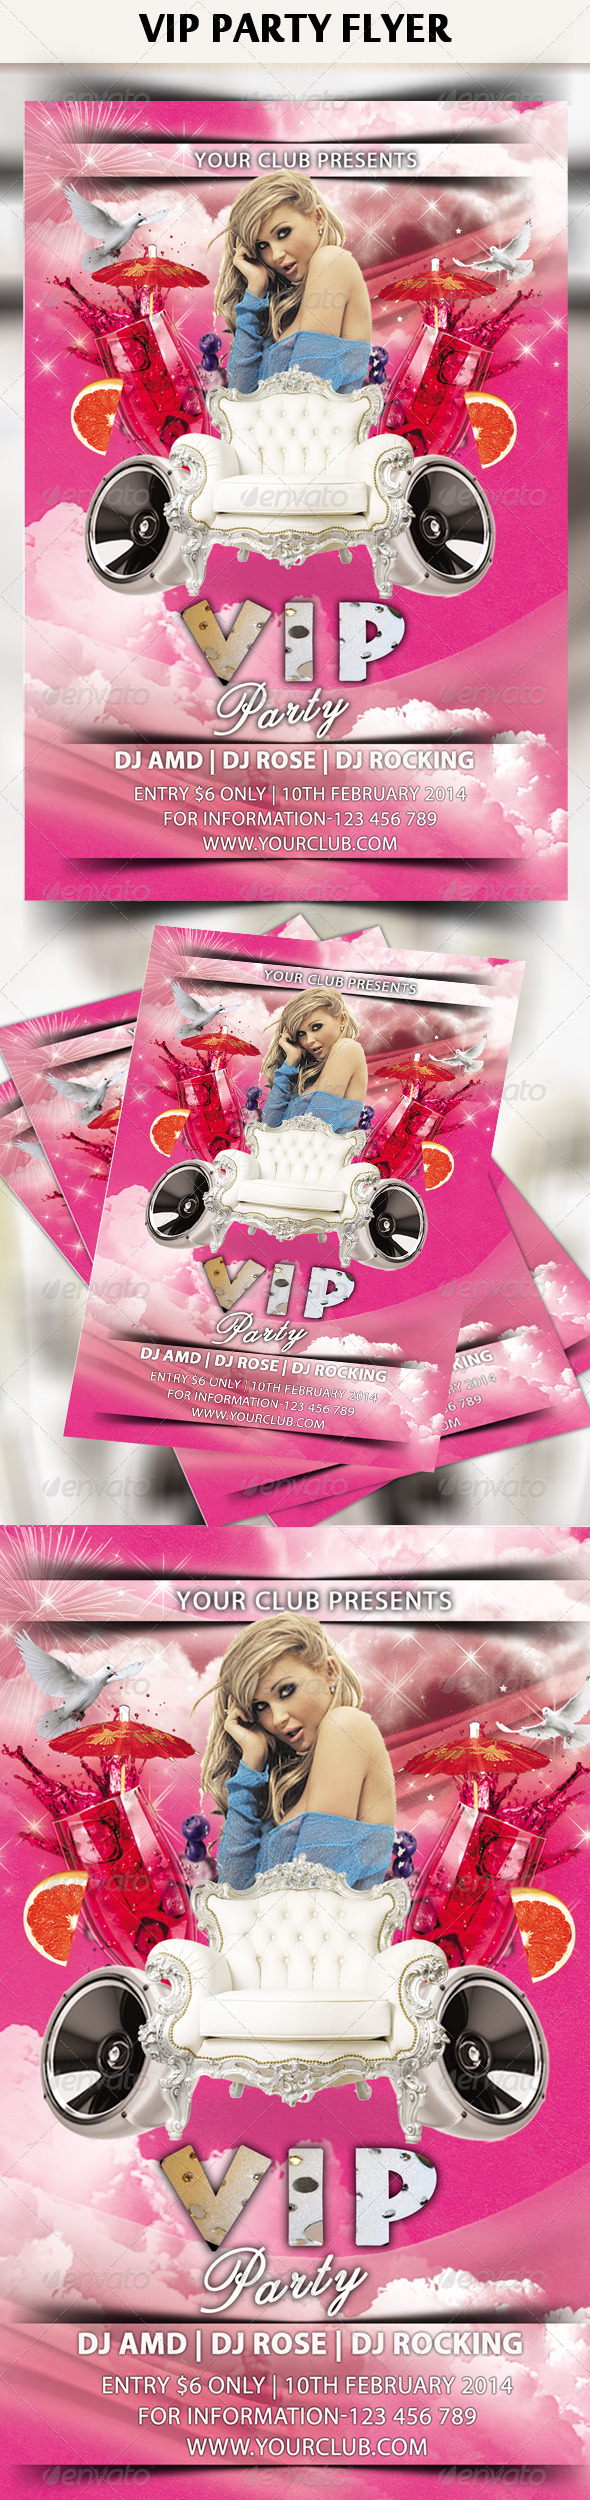 VIP / Royal Party Flyer - Clubs & Parties Events